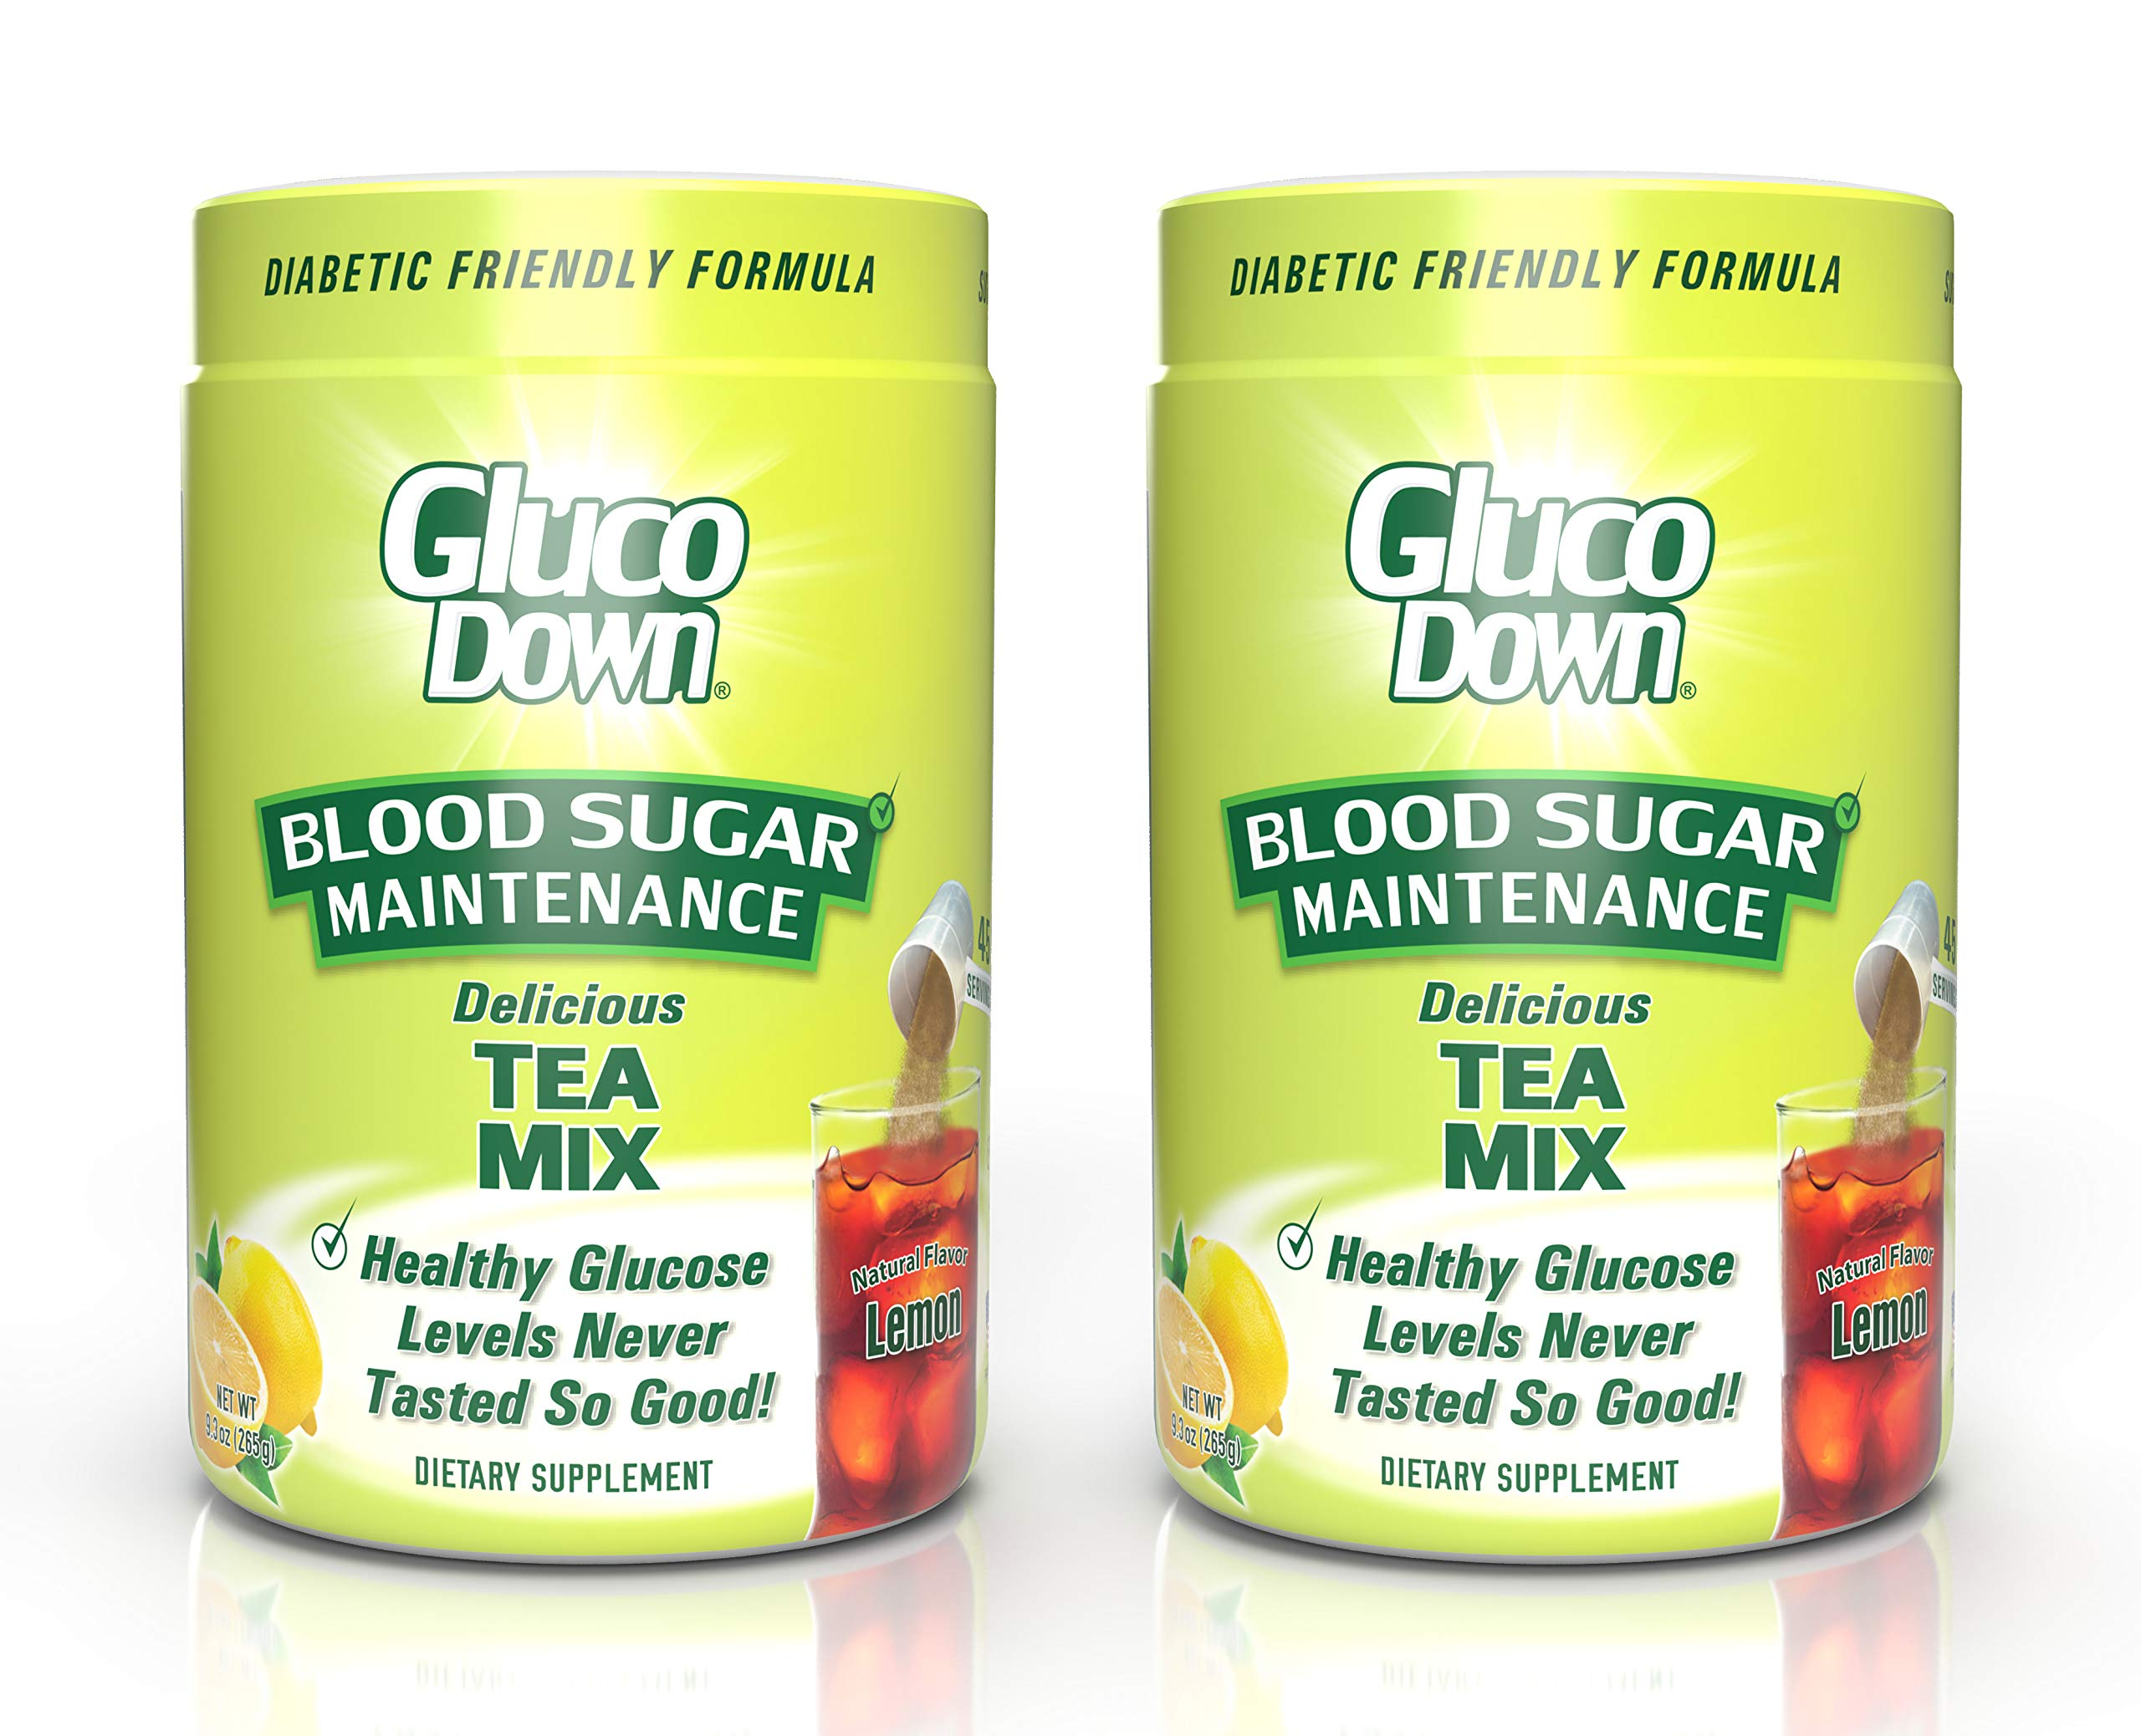 2-Pack, GlucoDown Diabetic Friendly Beverage, Maintain Healthy Blood Sugar, Delicious Lemon Tea (Two 45-Serving Containers)